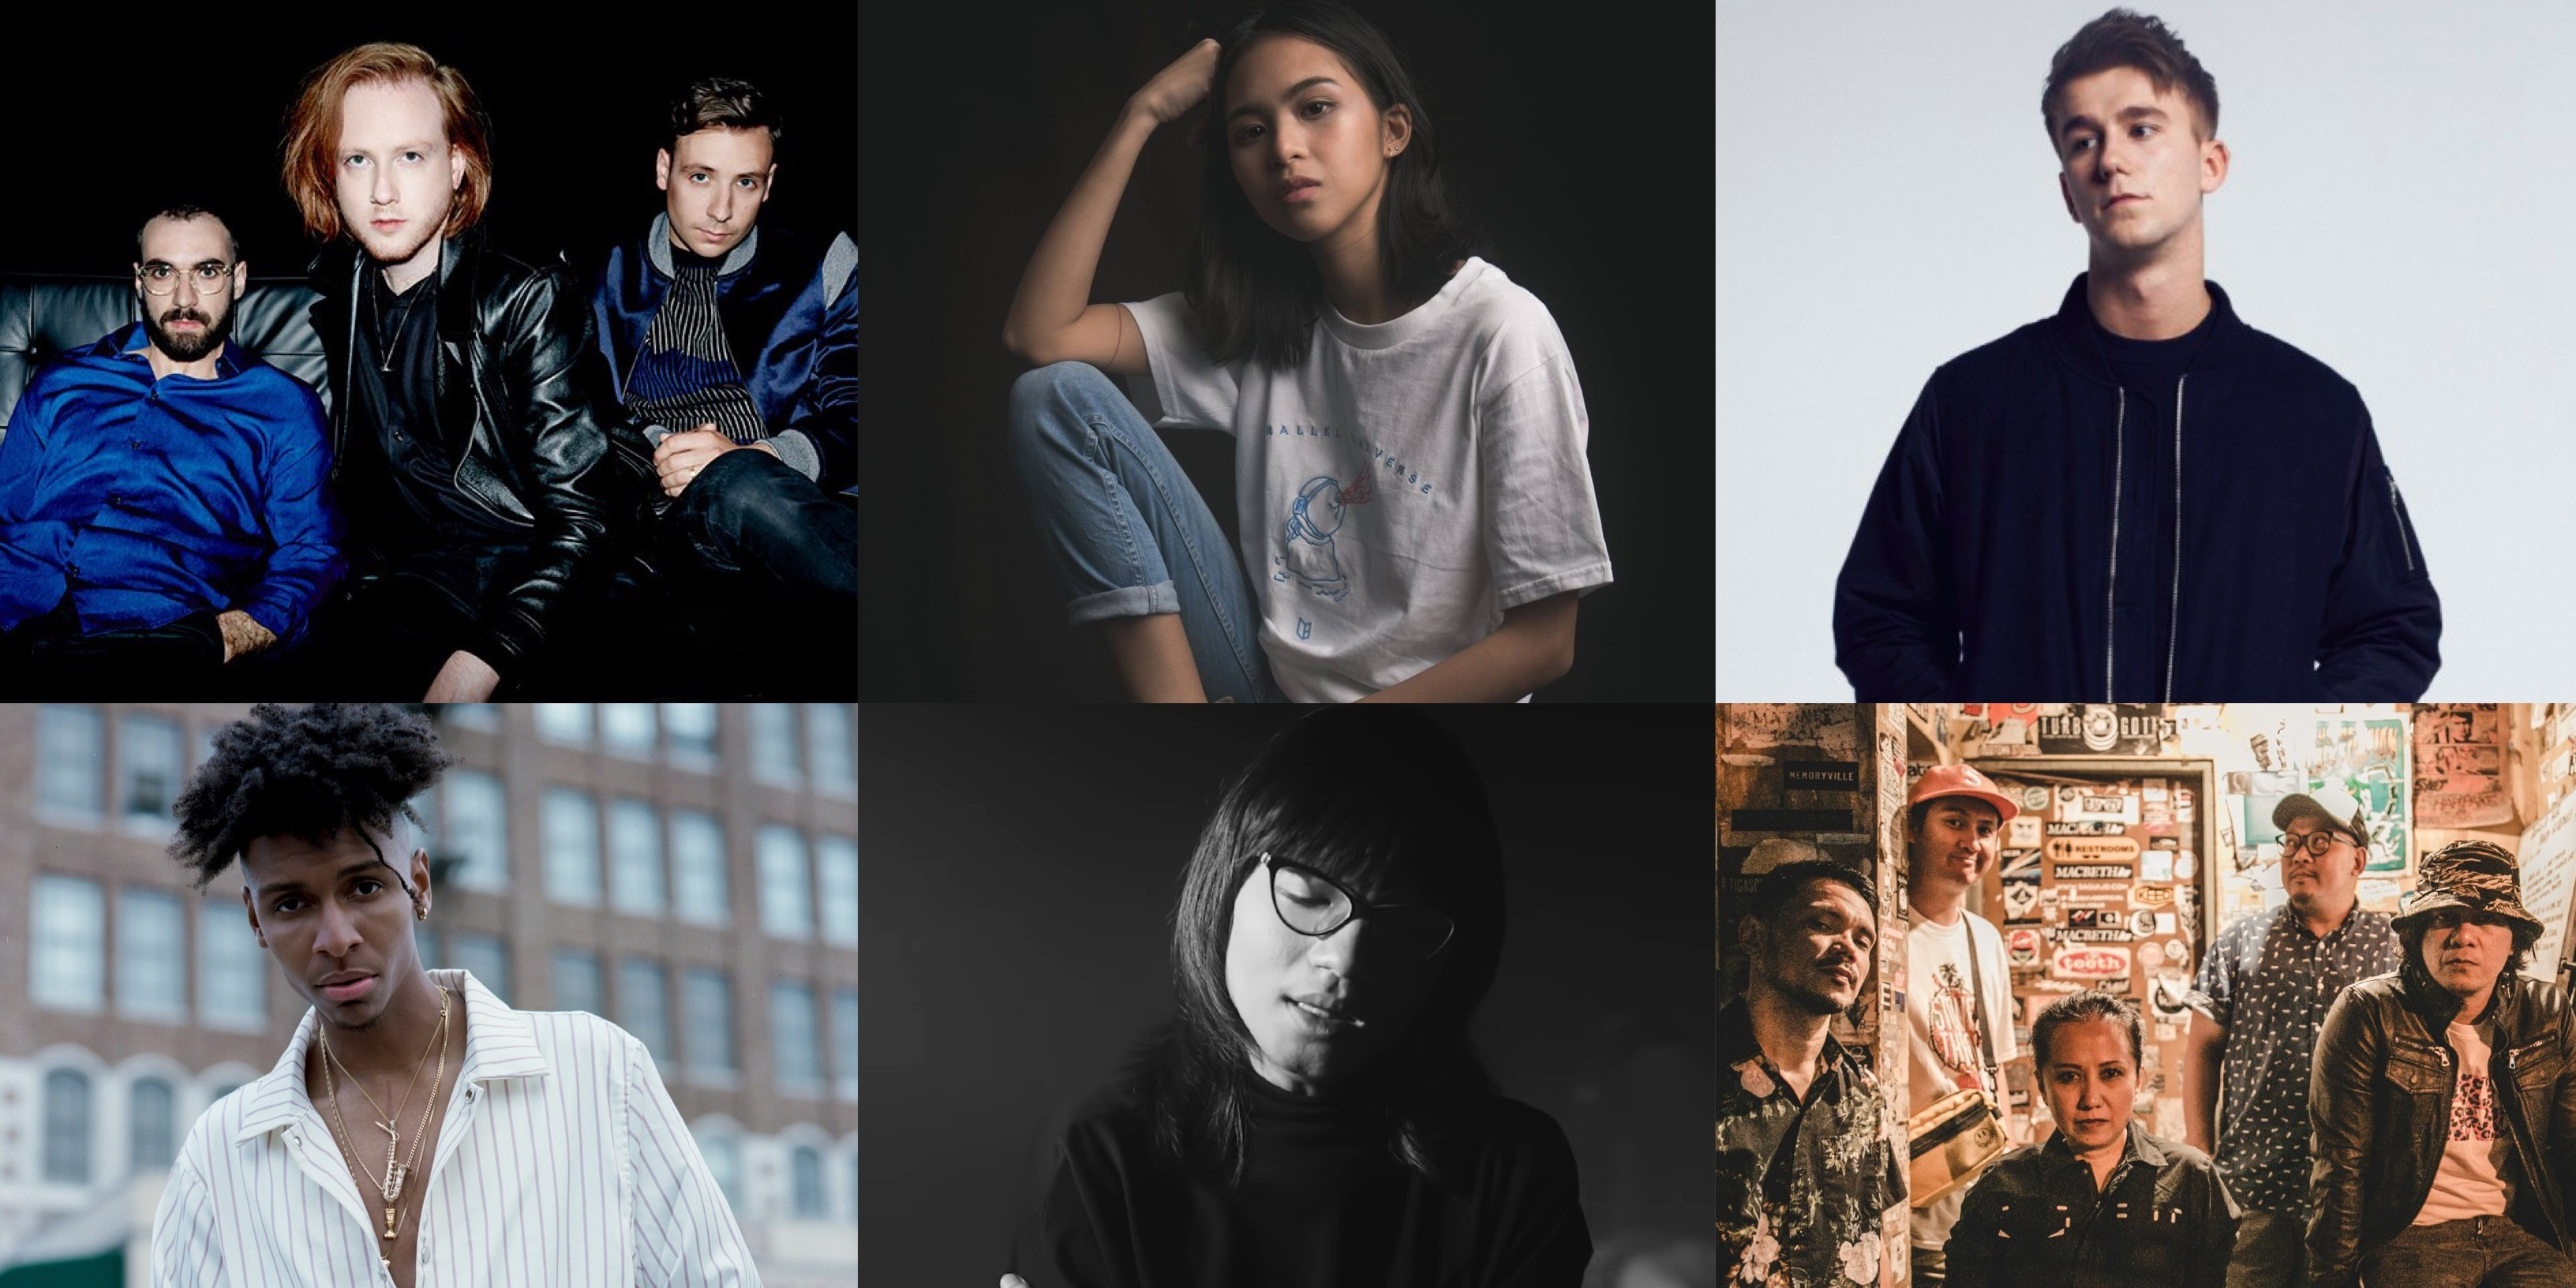 Wanderland unveils phase one lineup: Two Door Cinema Club, UNIQUE, Masego, and more